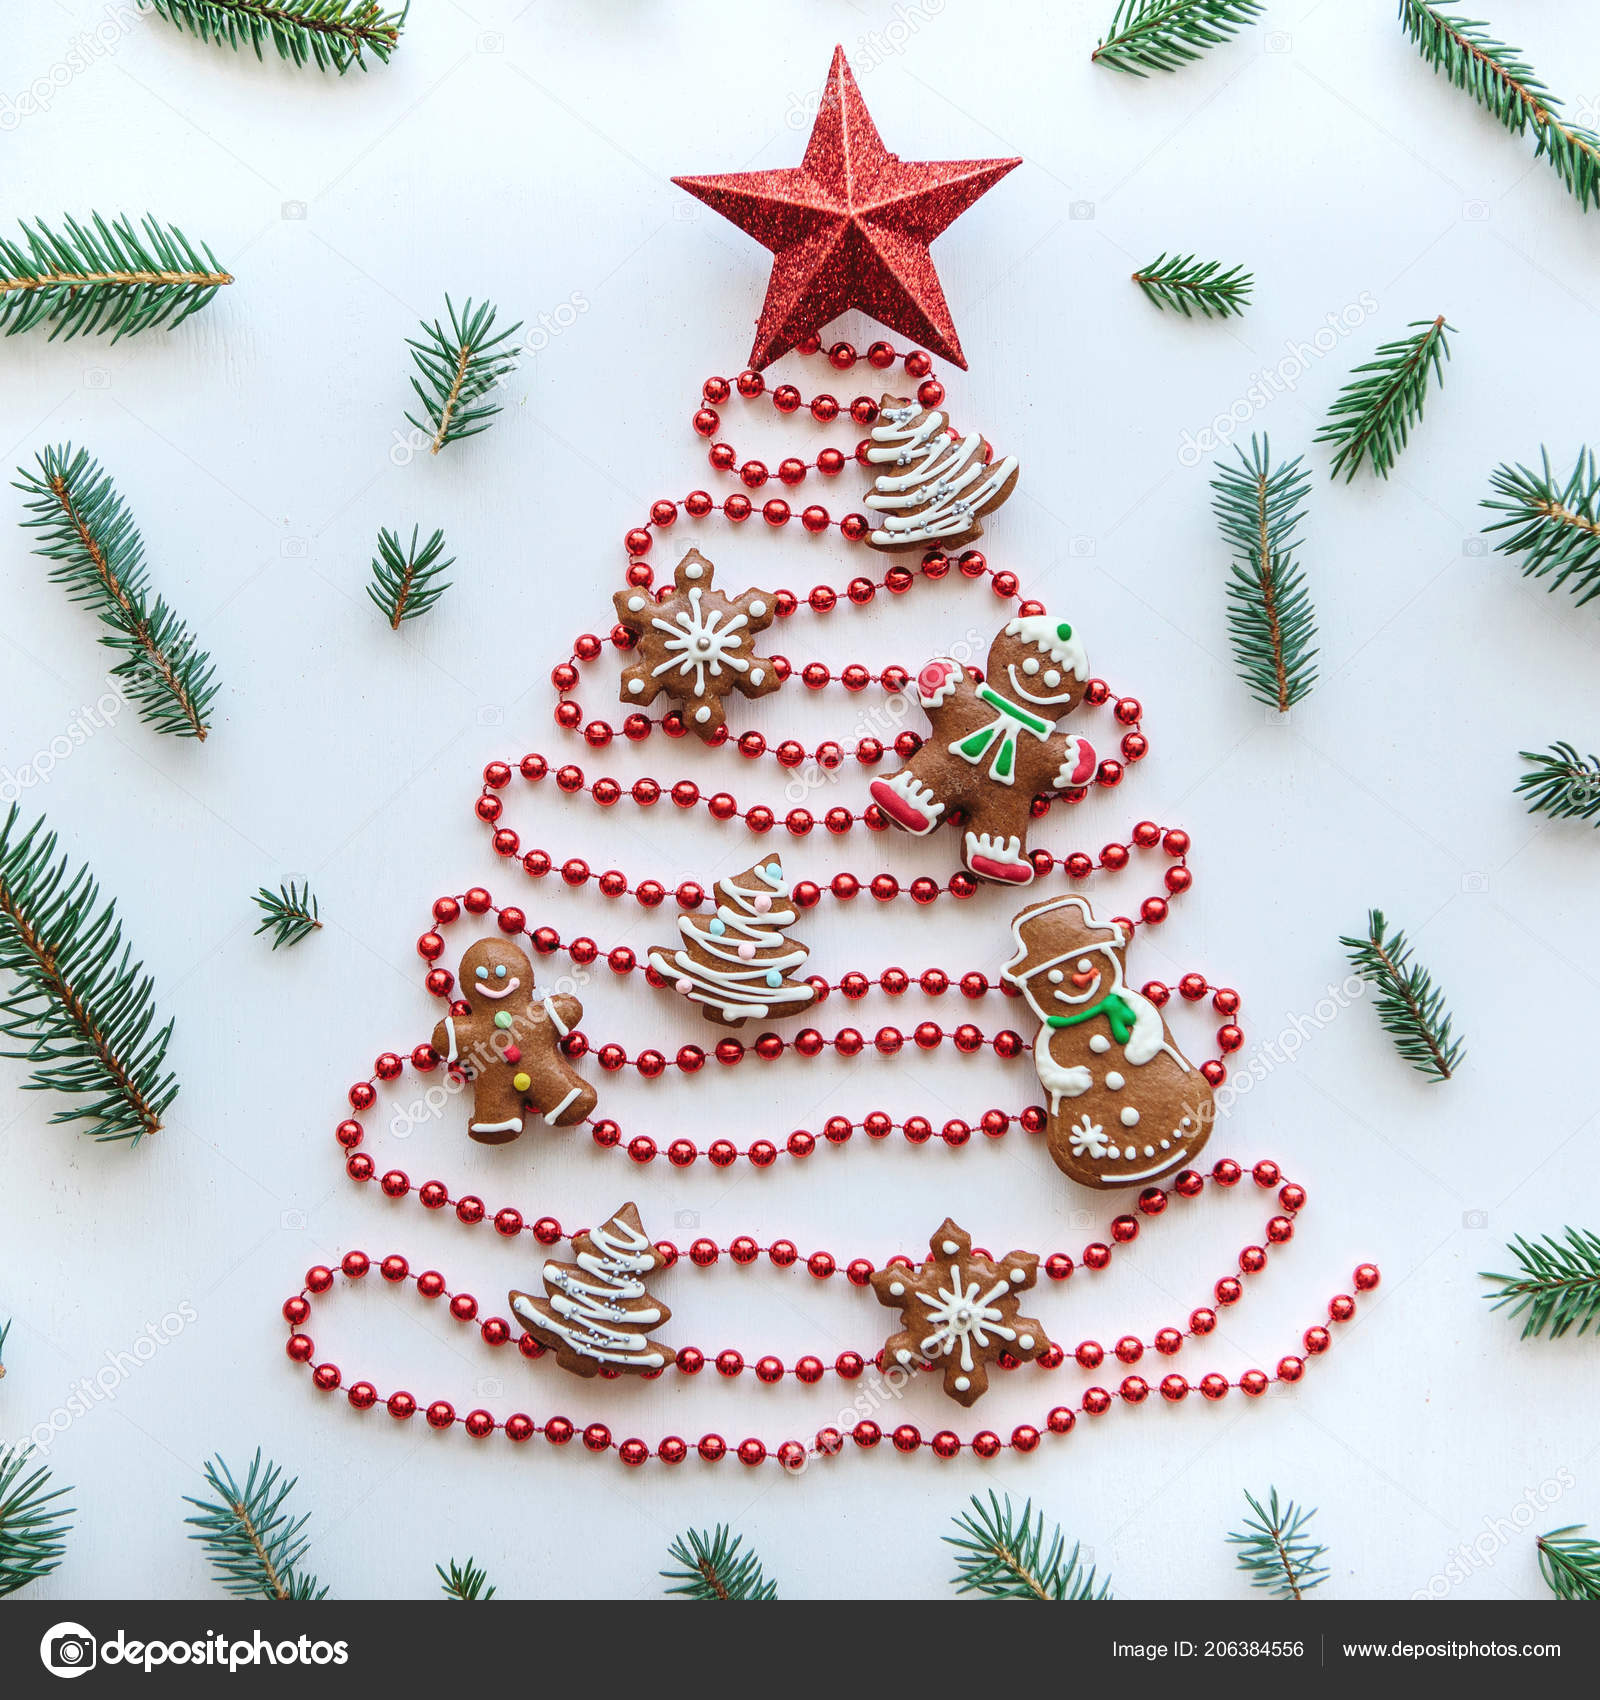 A Star For Christmas.A Christmas Tree Made Of Beads Decorated With Traditional